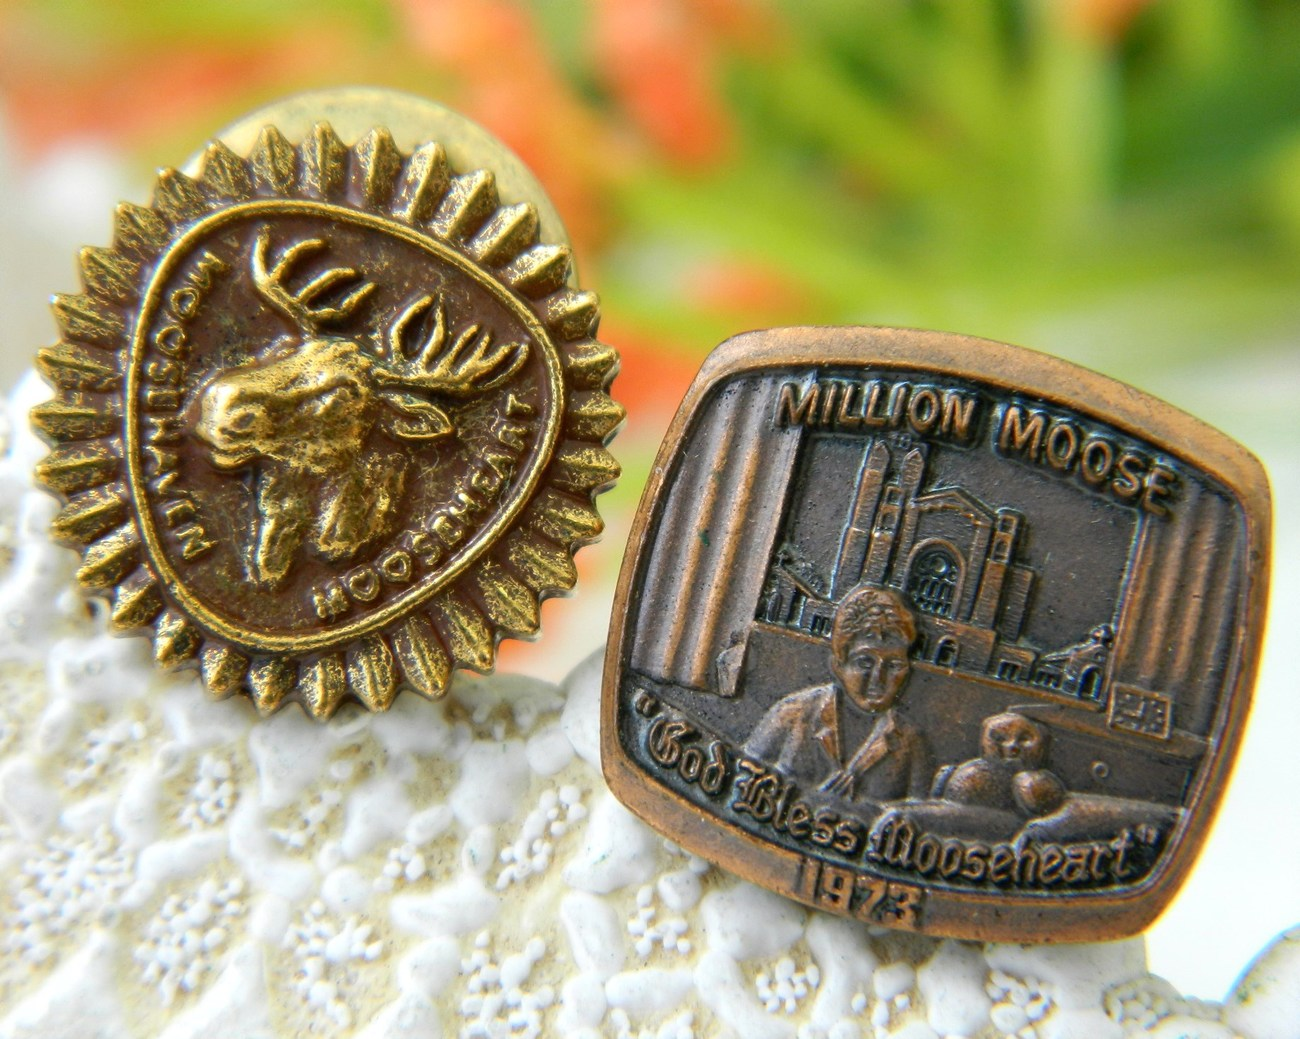 2_vintage_order_moose_lapel_pin_mooseheart_moosehaven_fraternal